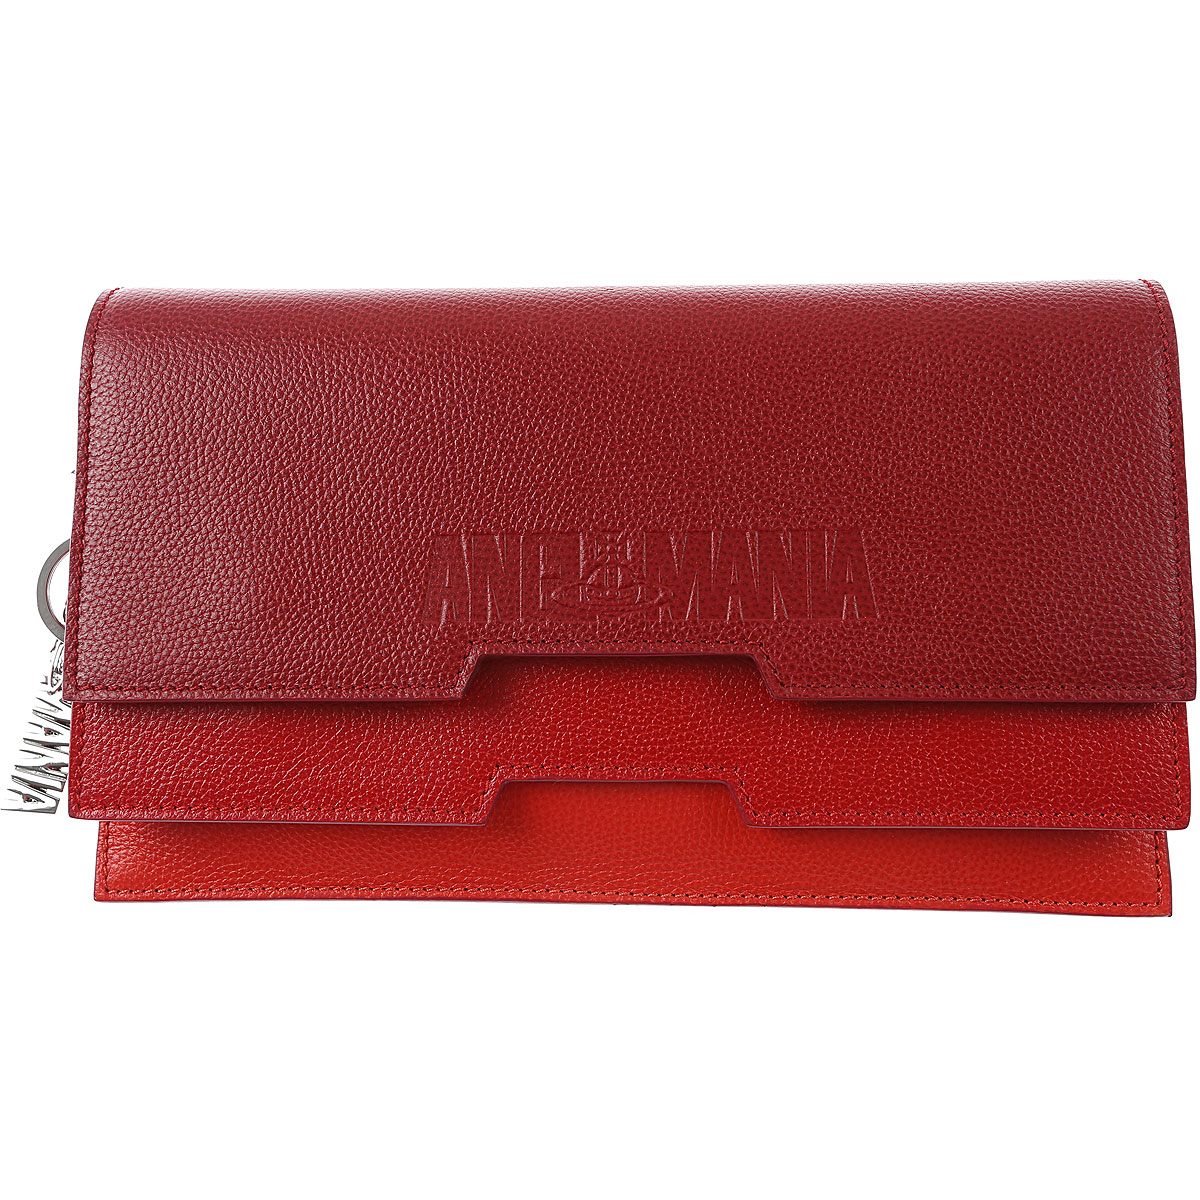 Vivienne Westwood Clutch Bag, Anglomania, Red, Leather, 2019